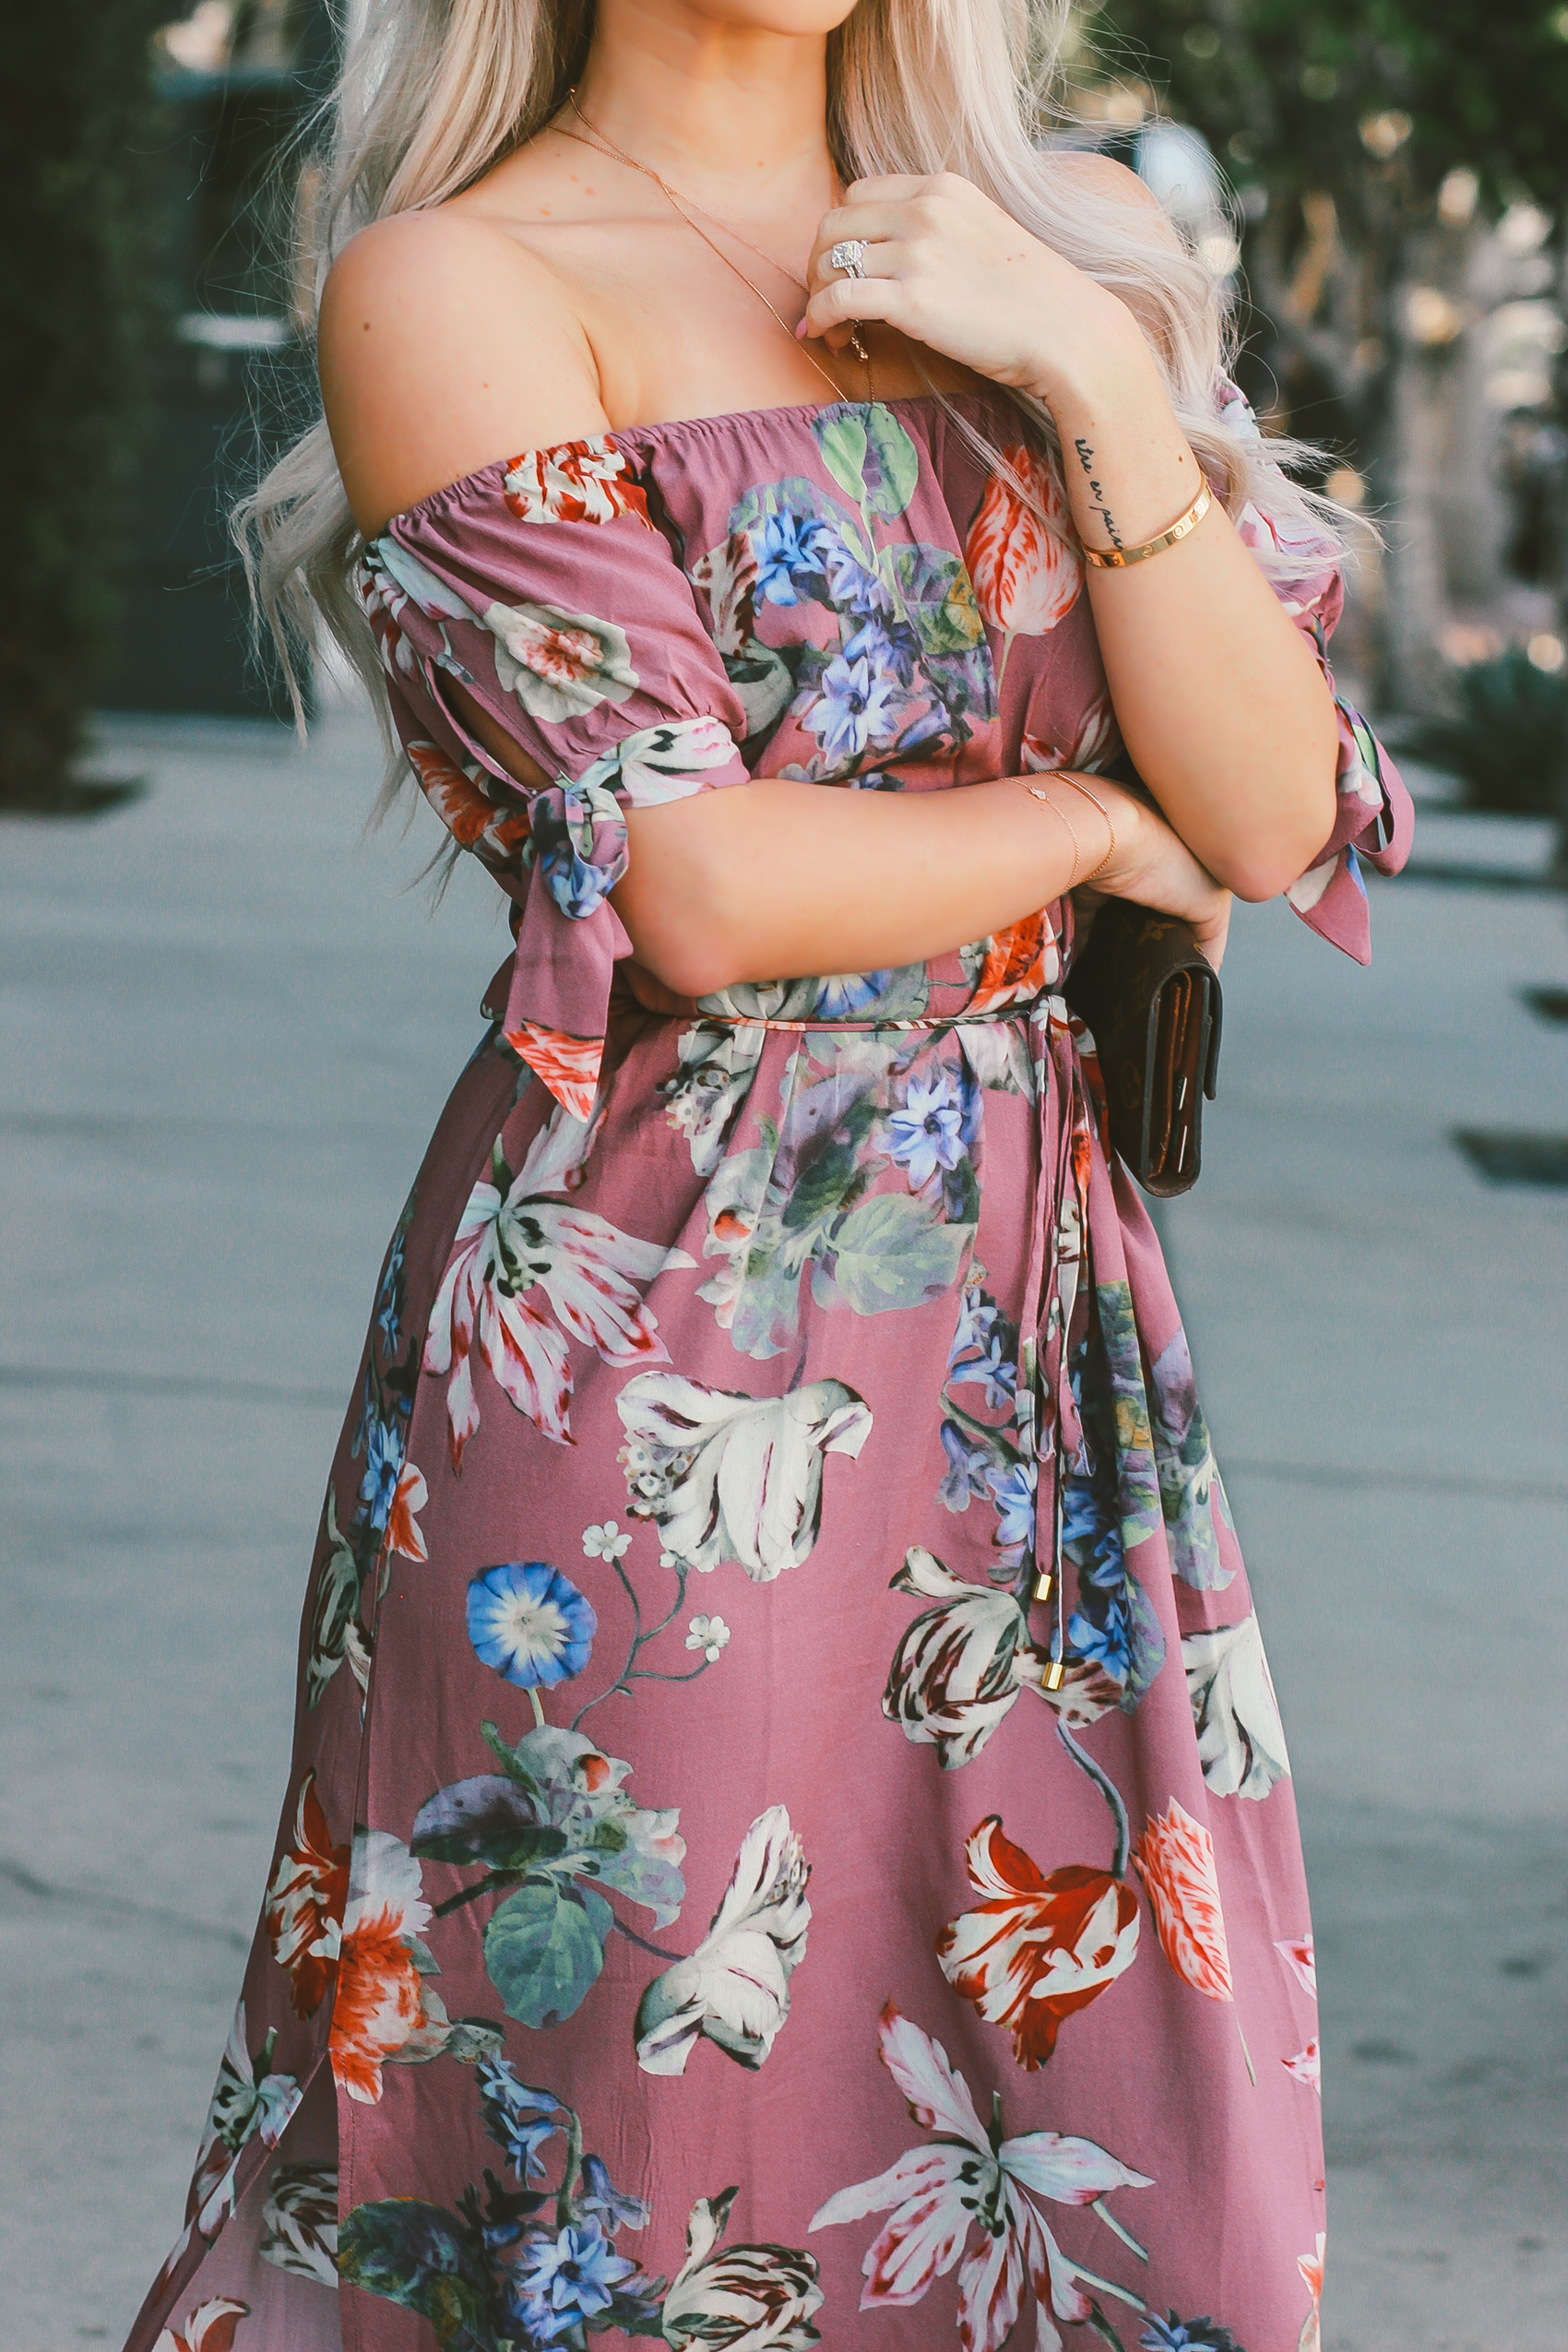 A Plum Floral Dress from @plumprettysugar | Spring Style | Blondie in the City by Hayley Larue